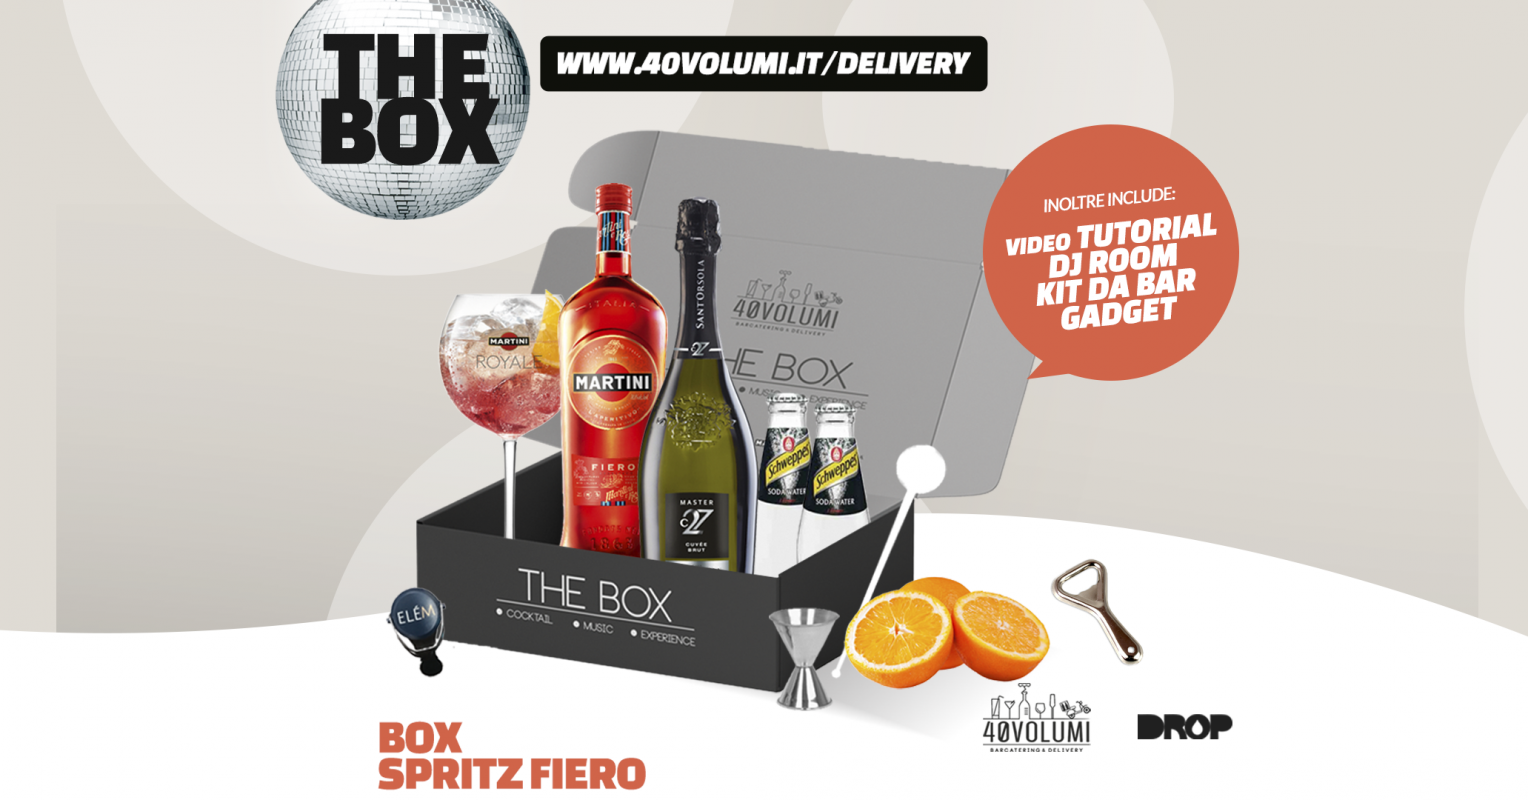 box spritz fiero per 40 volumi